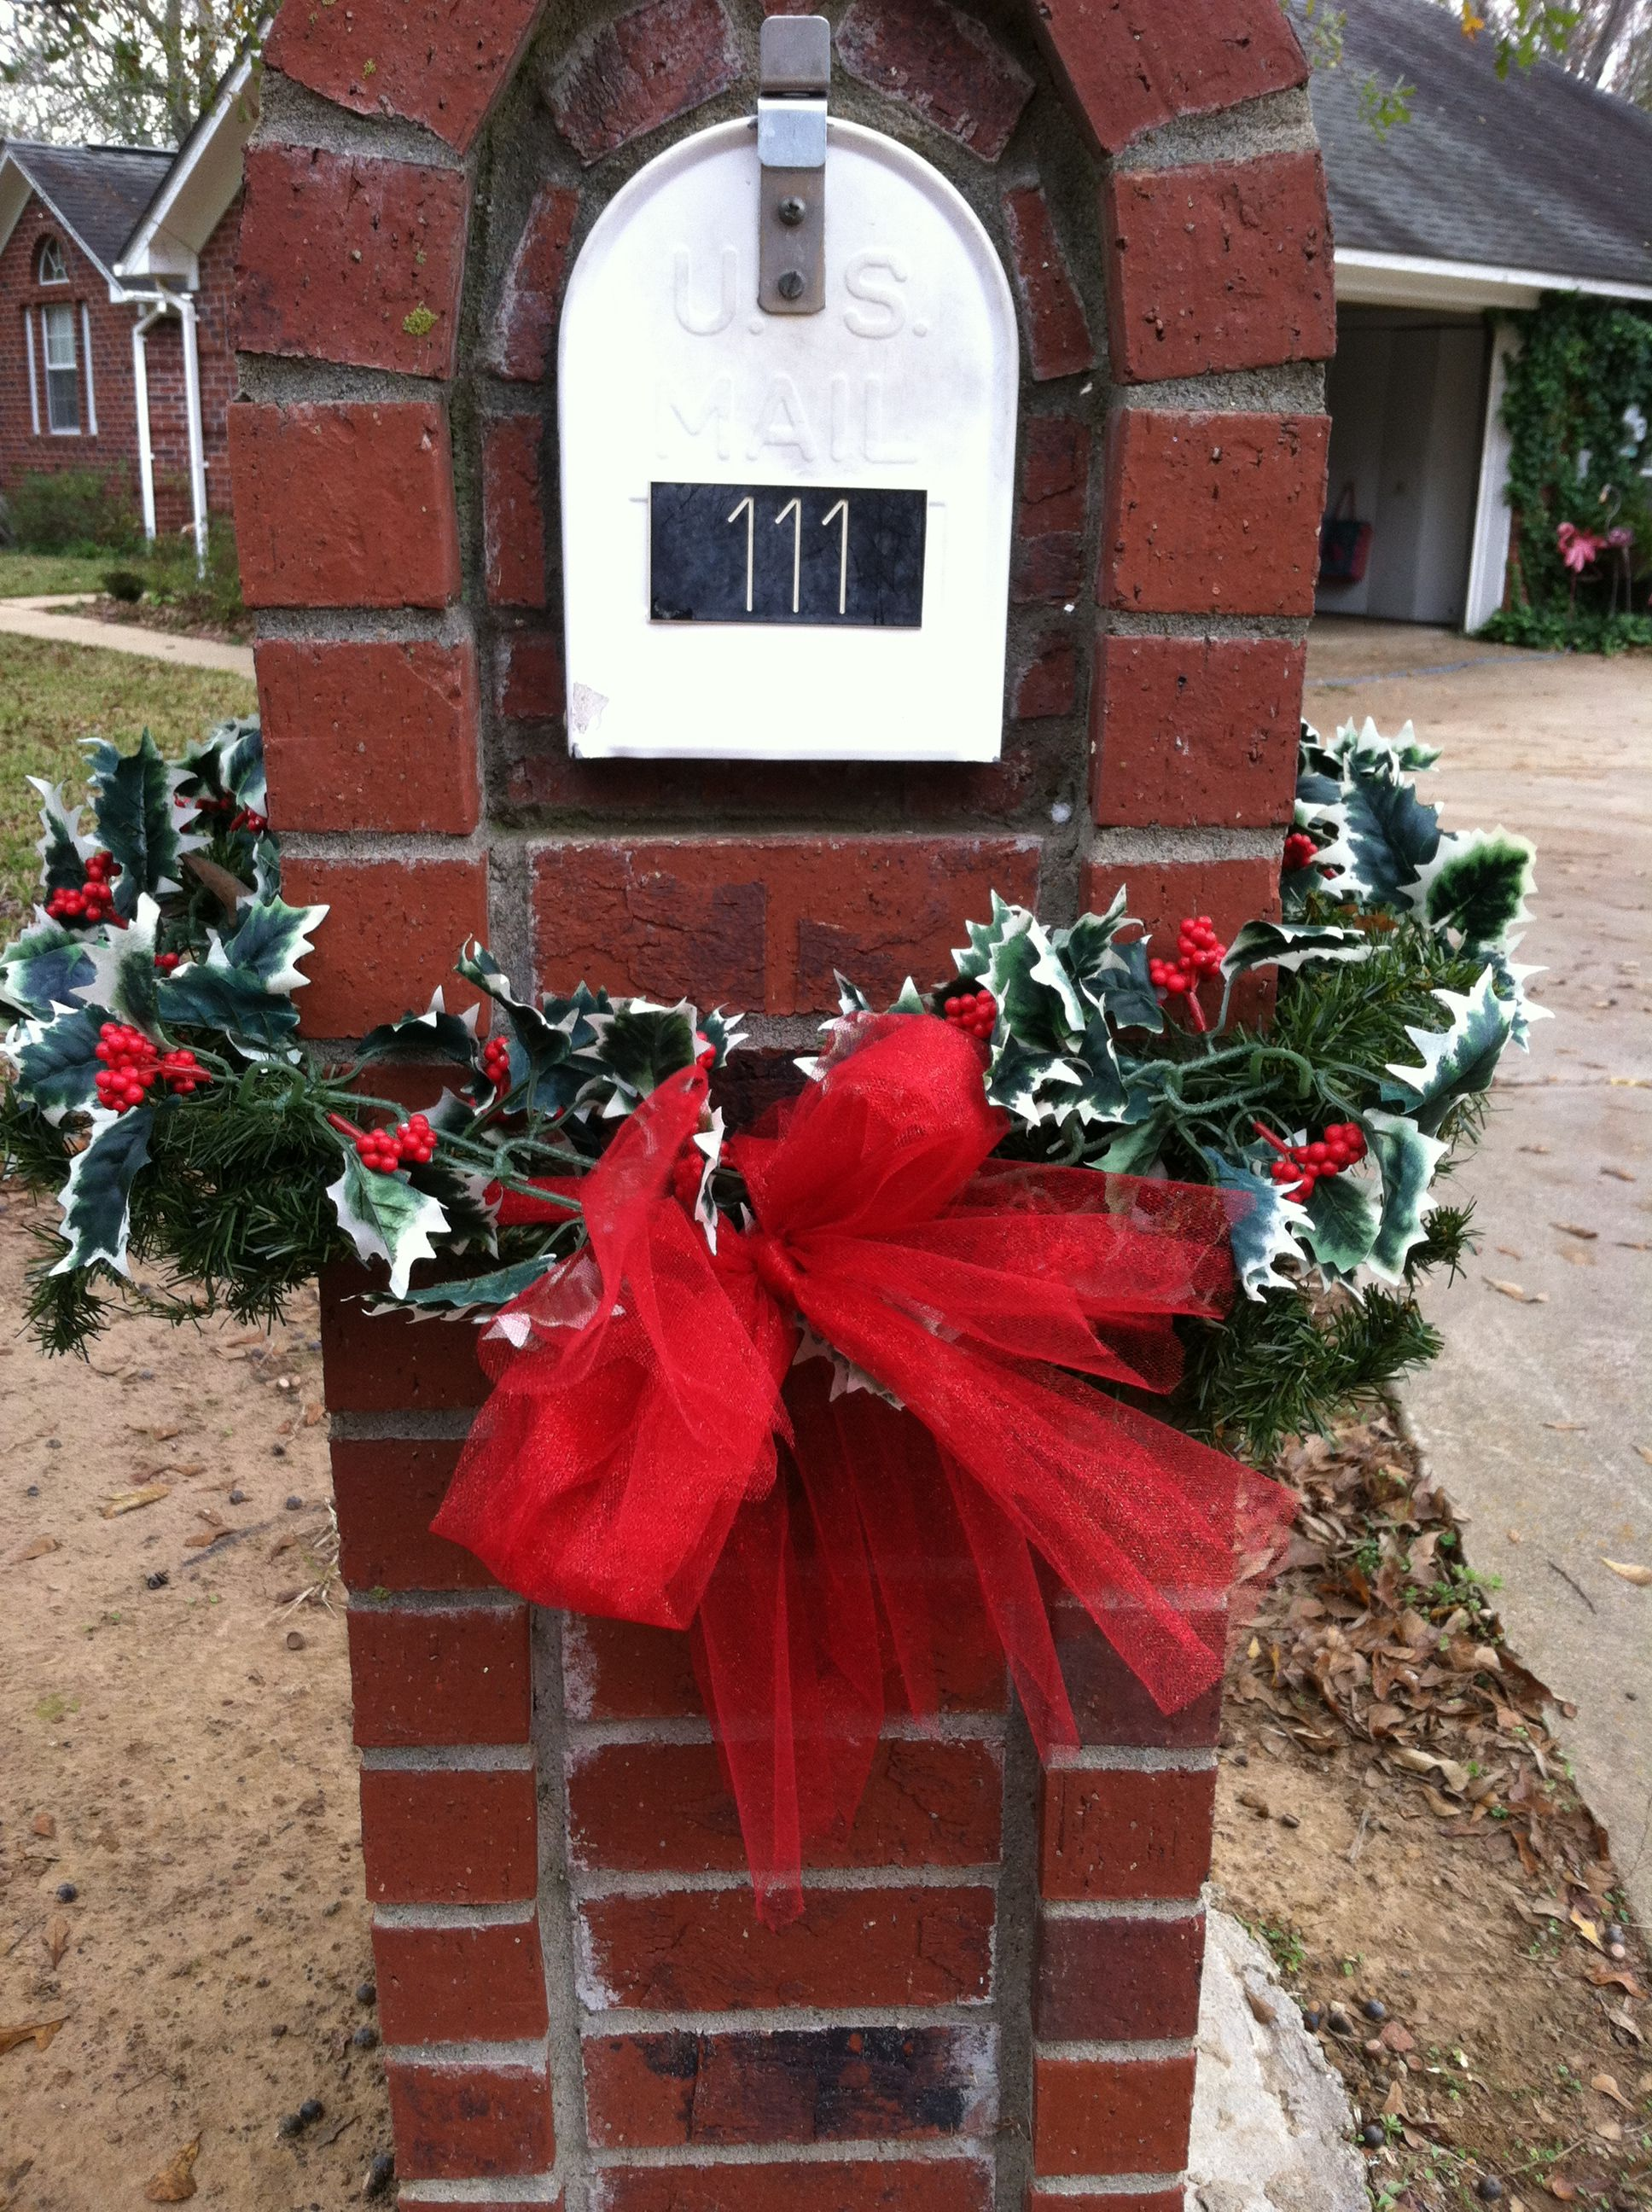 Mailbox Christmas Decorations.Decorating A Brick Mailbox Christmas Decorating Brick